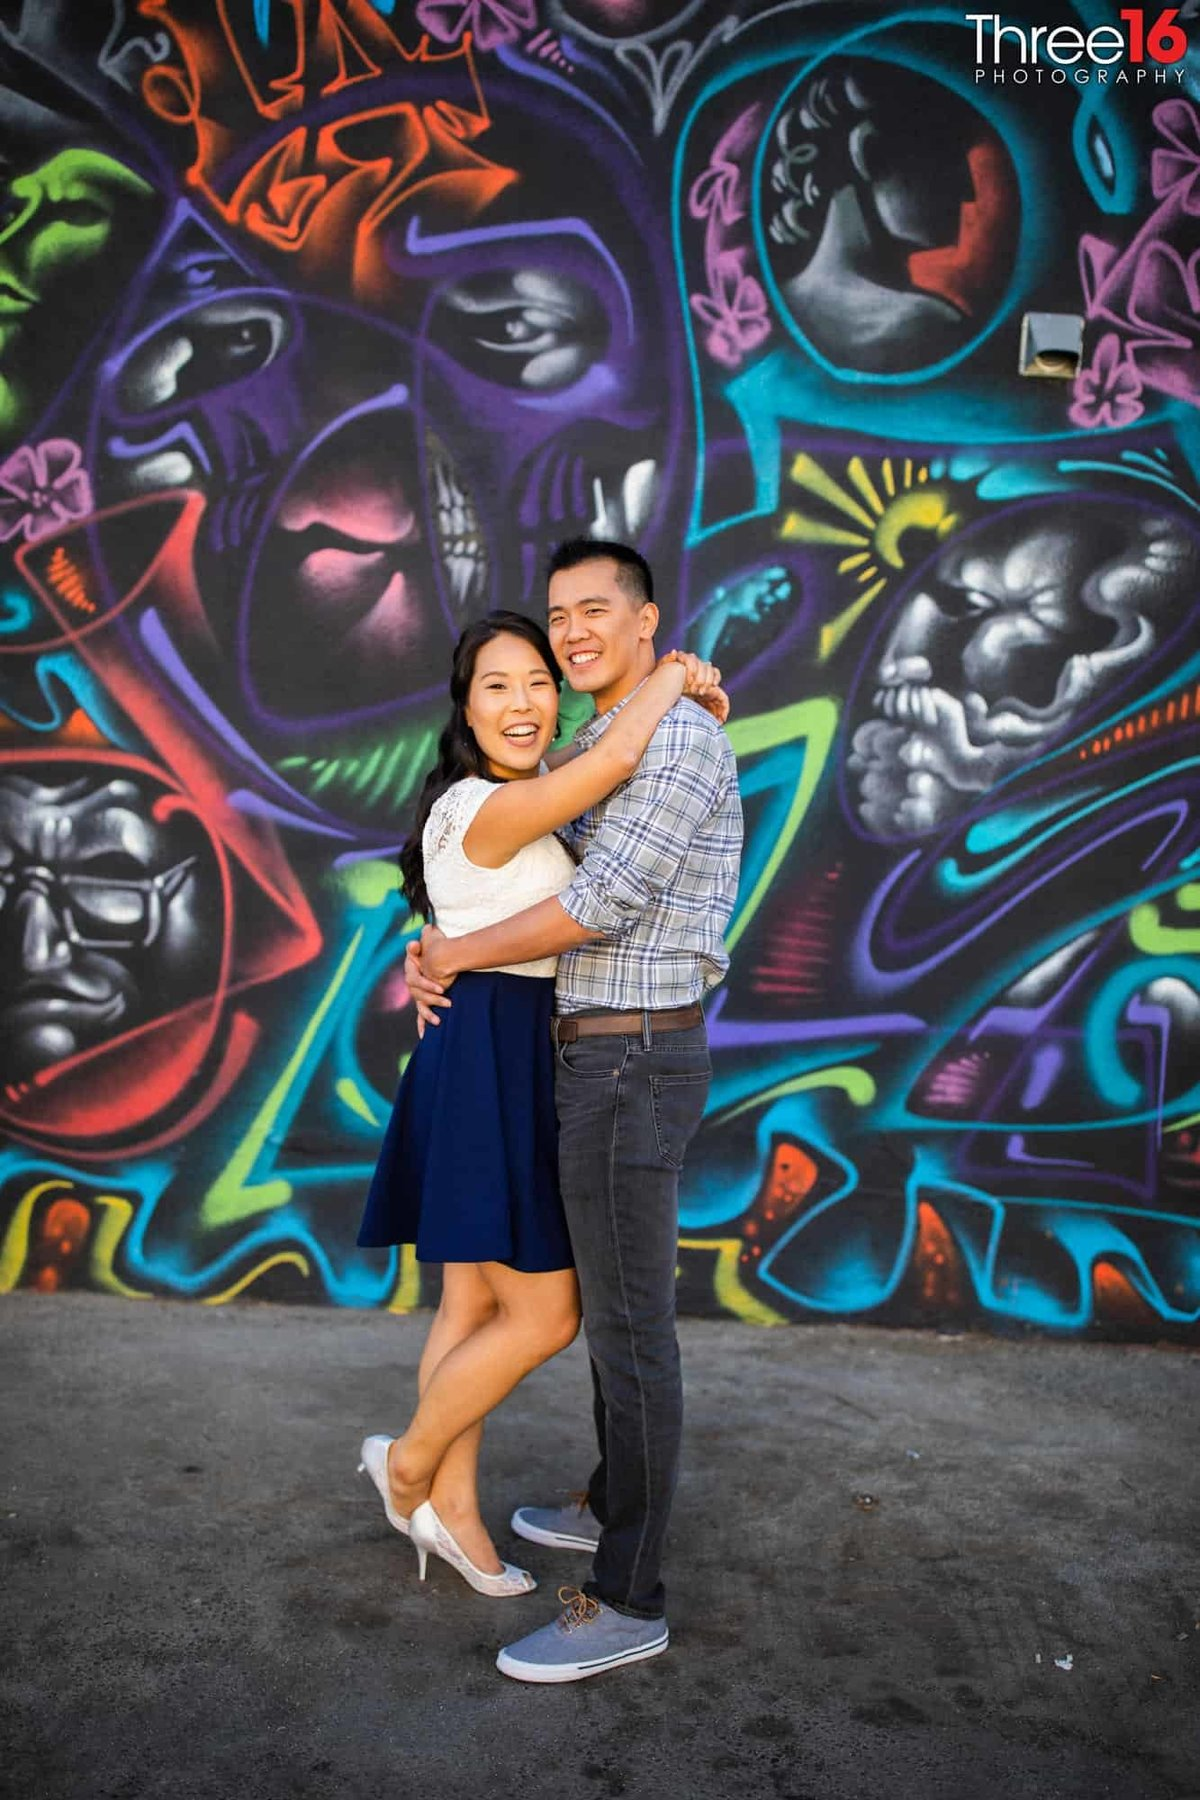 Arts District Engagement Photos Los Angeles County Wedding Professional Photography